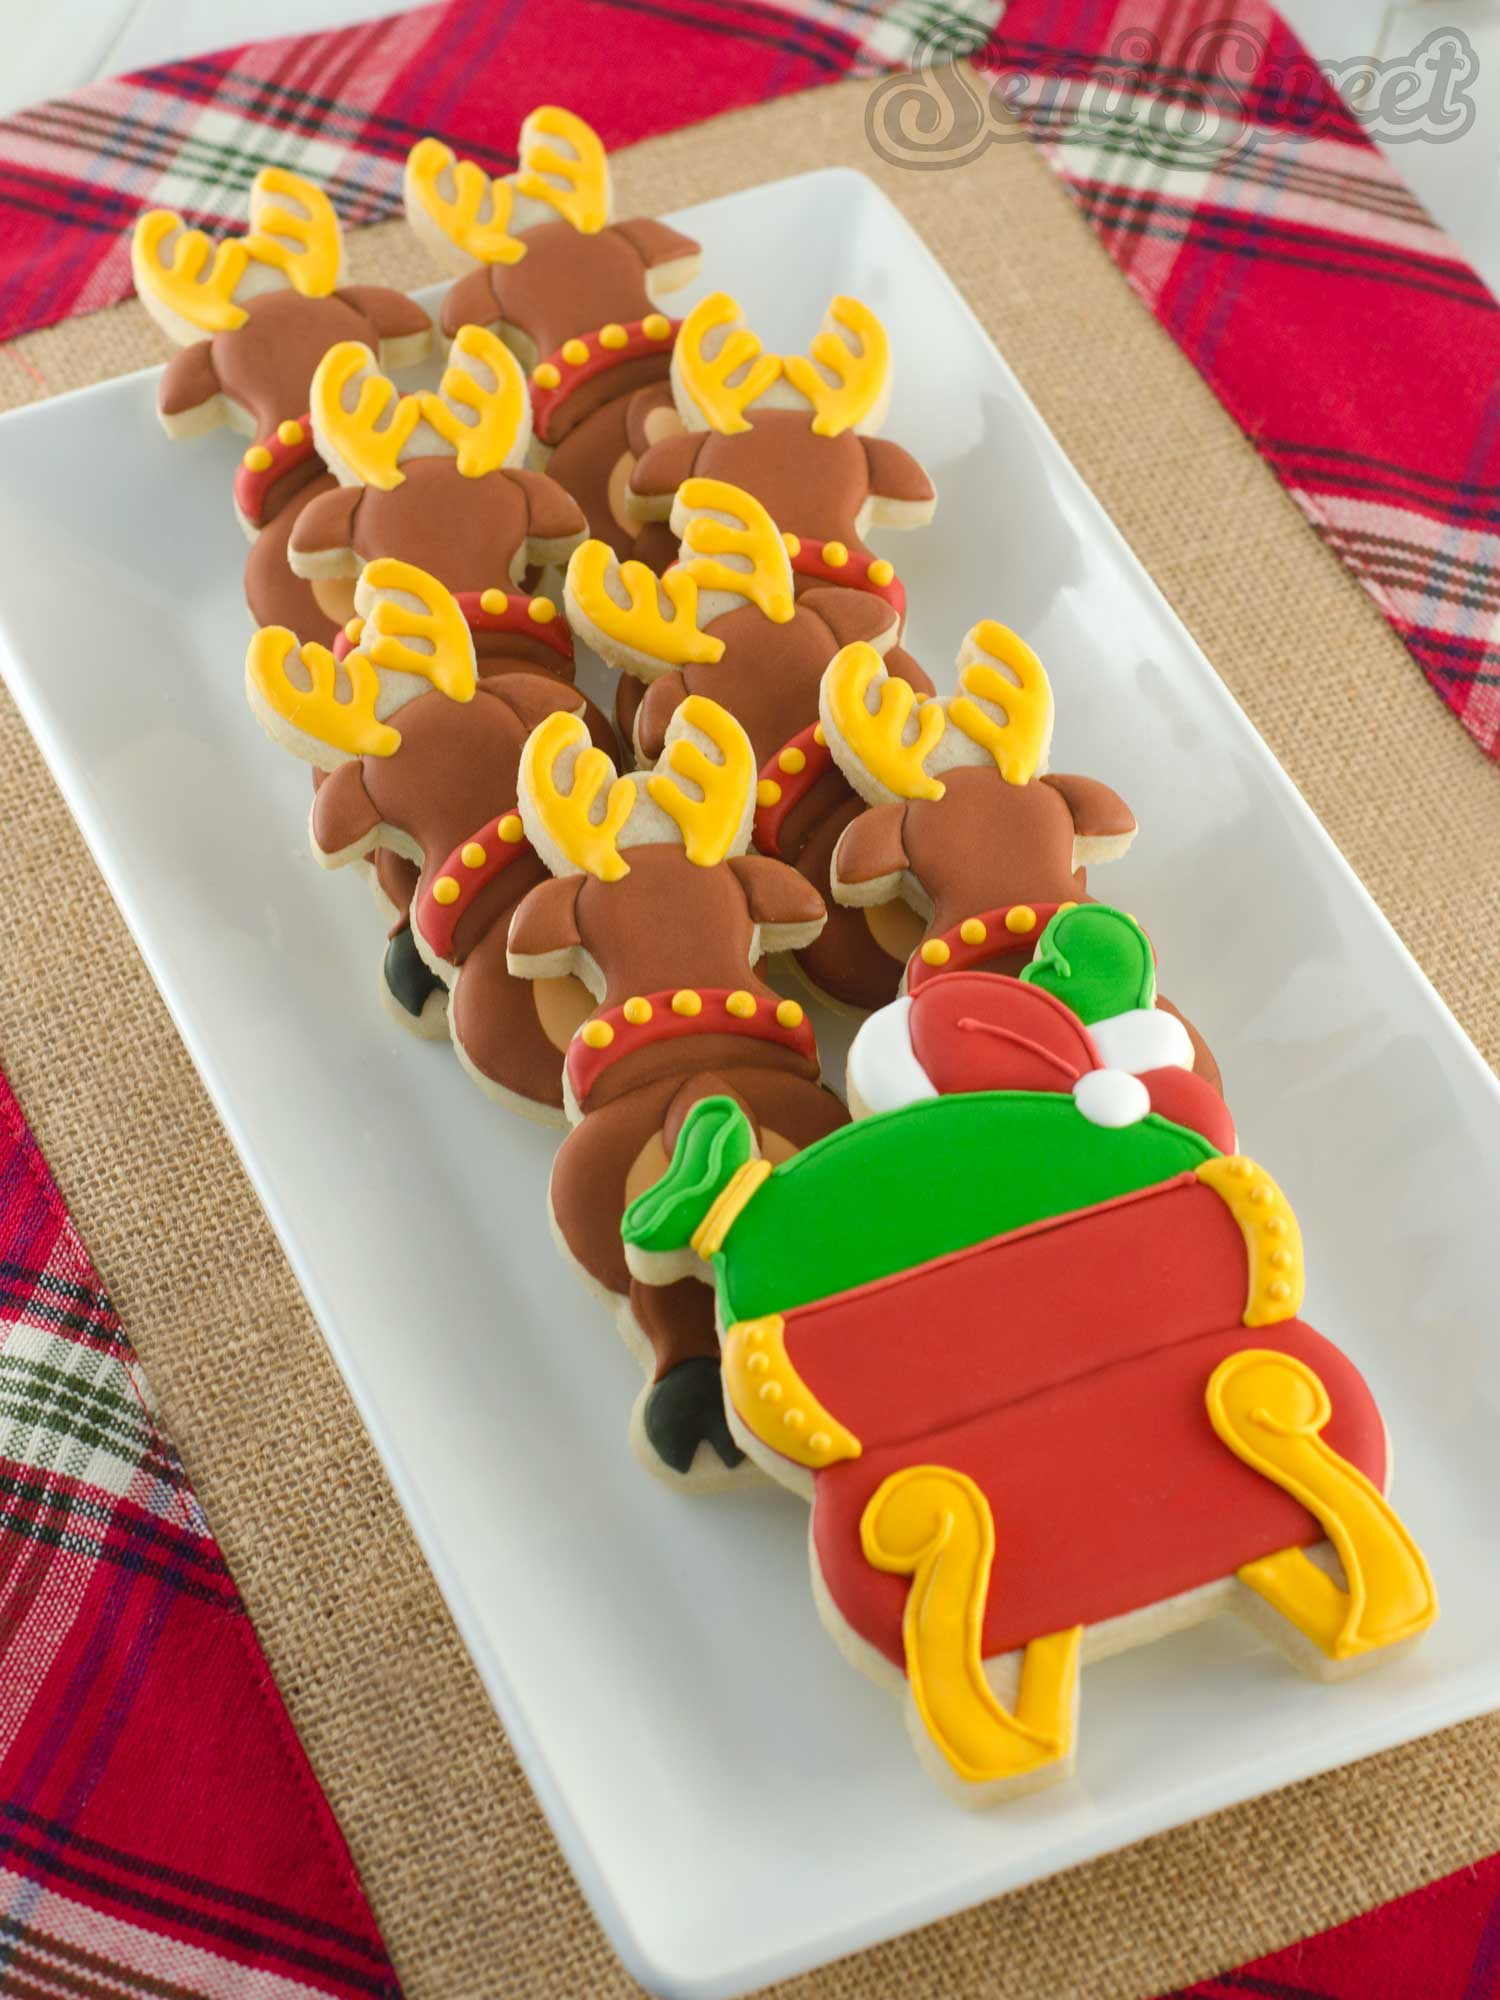 How to Make a Santa and Reindeer Cookie Platter by Semi Sweet Designs